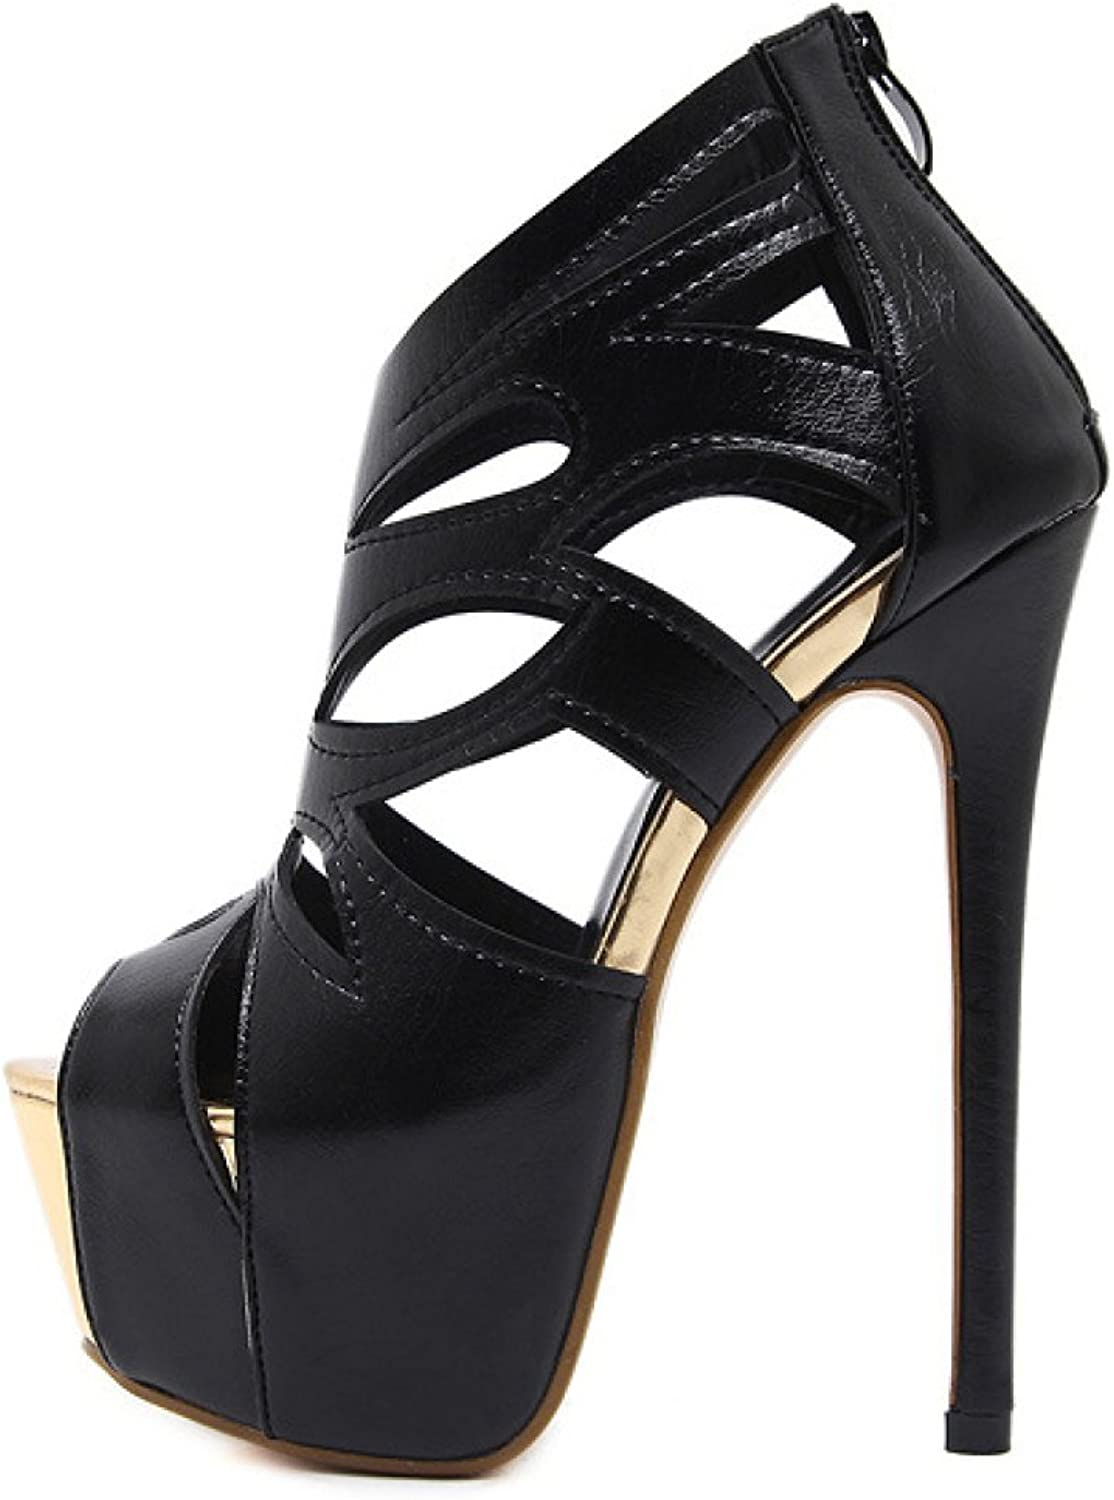 Women's Platform Sandals Stiletto Sexy Party Dress shoes Peep Toe High Heels Pumps,Black-EU 40=9B(M) US